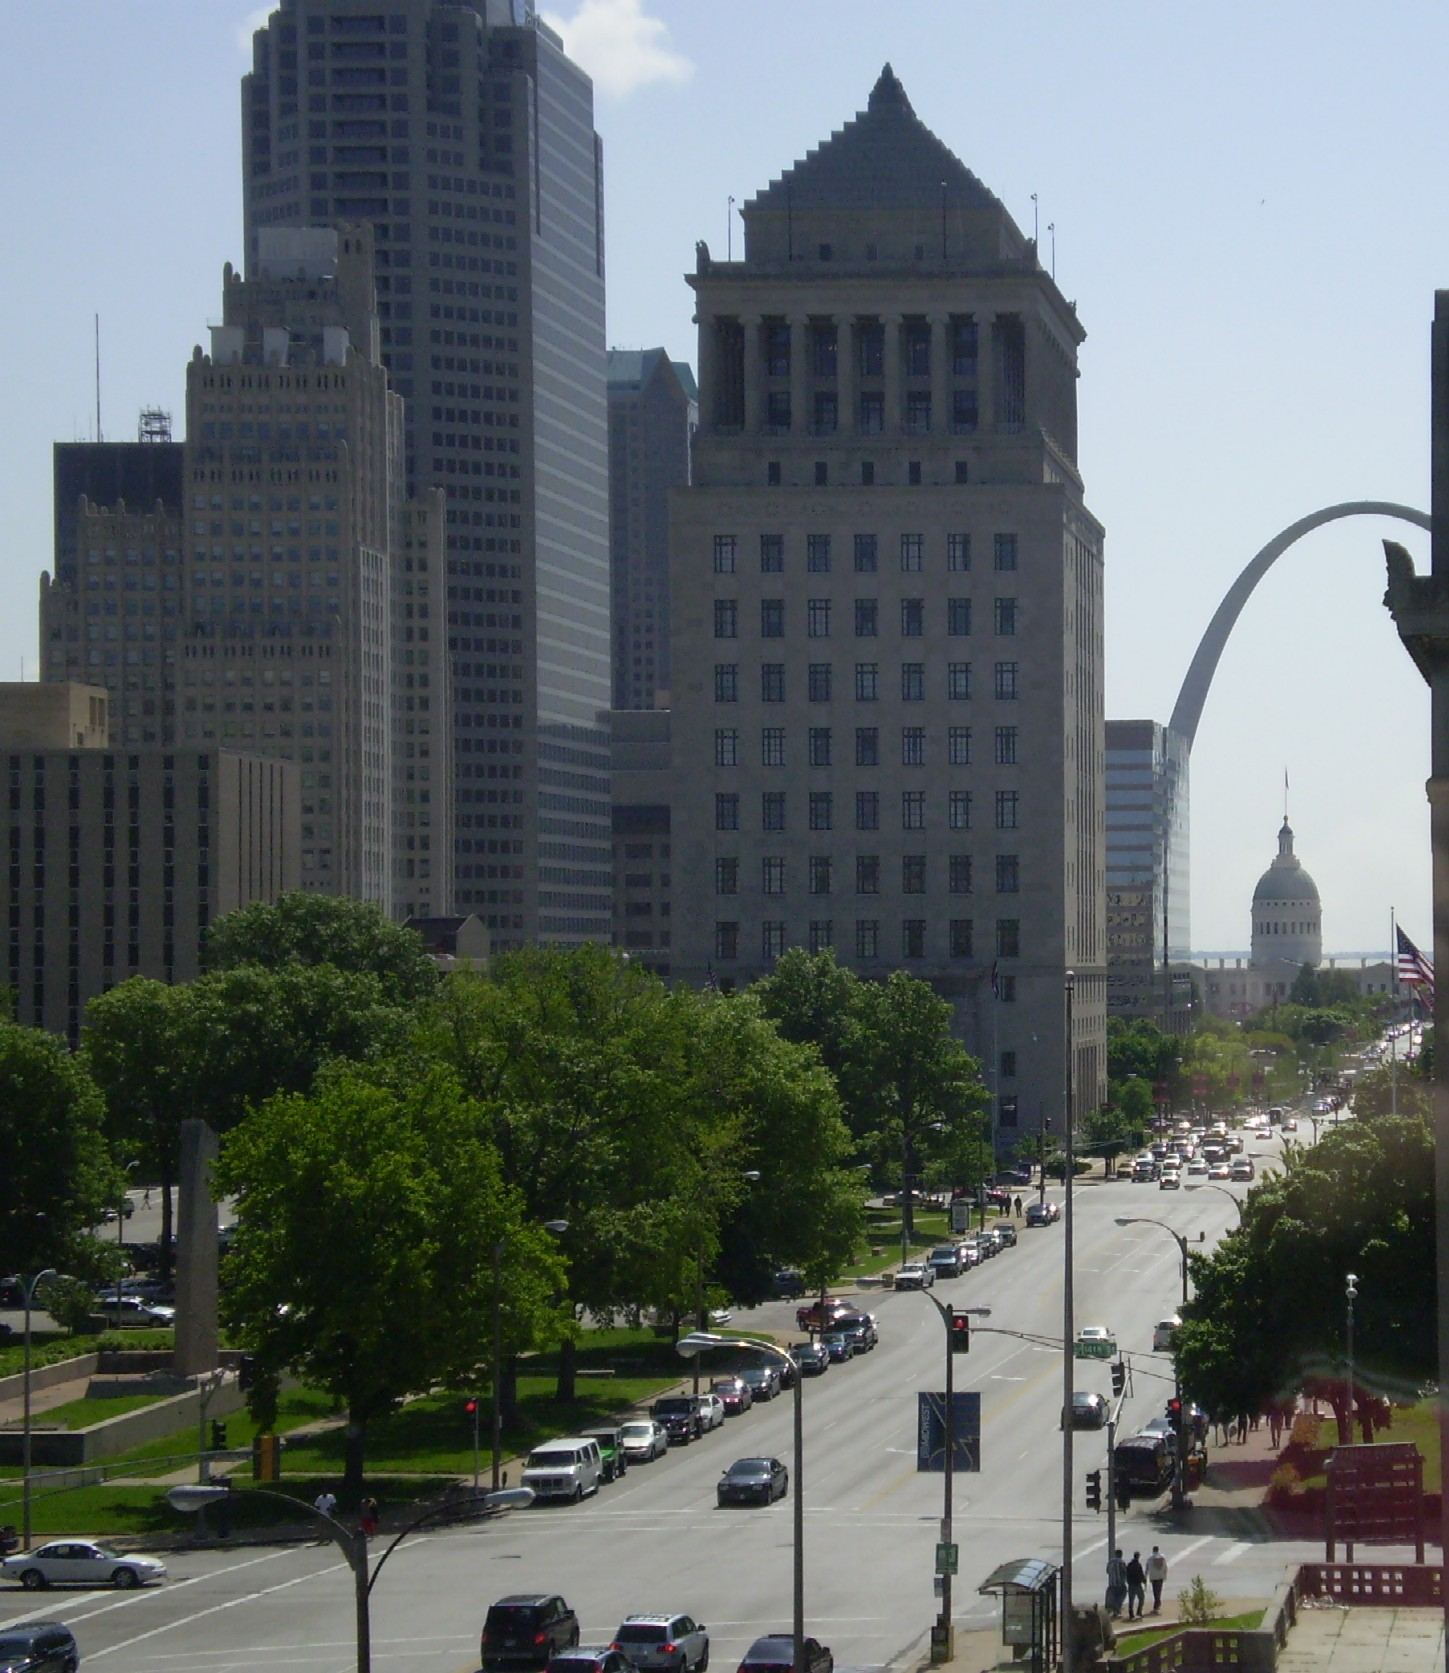 View down Market toward Arch